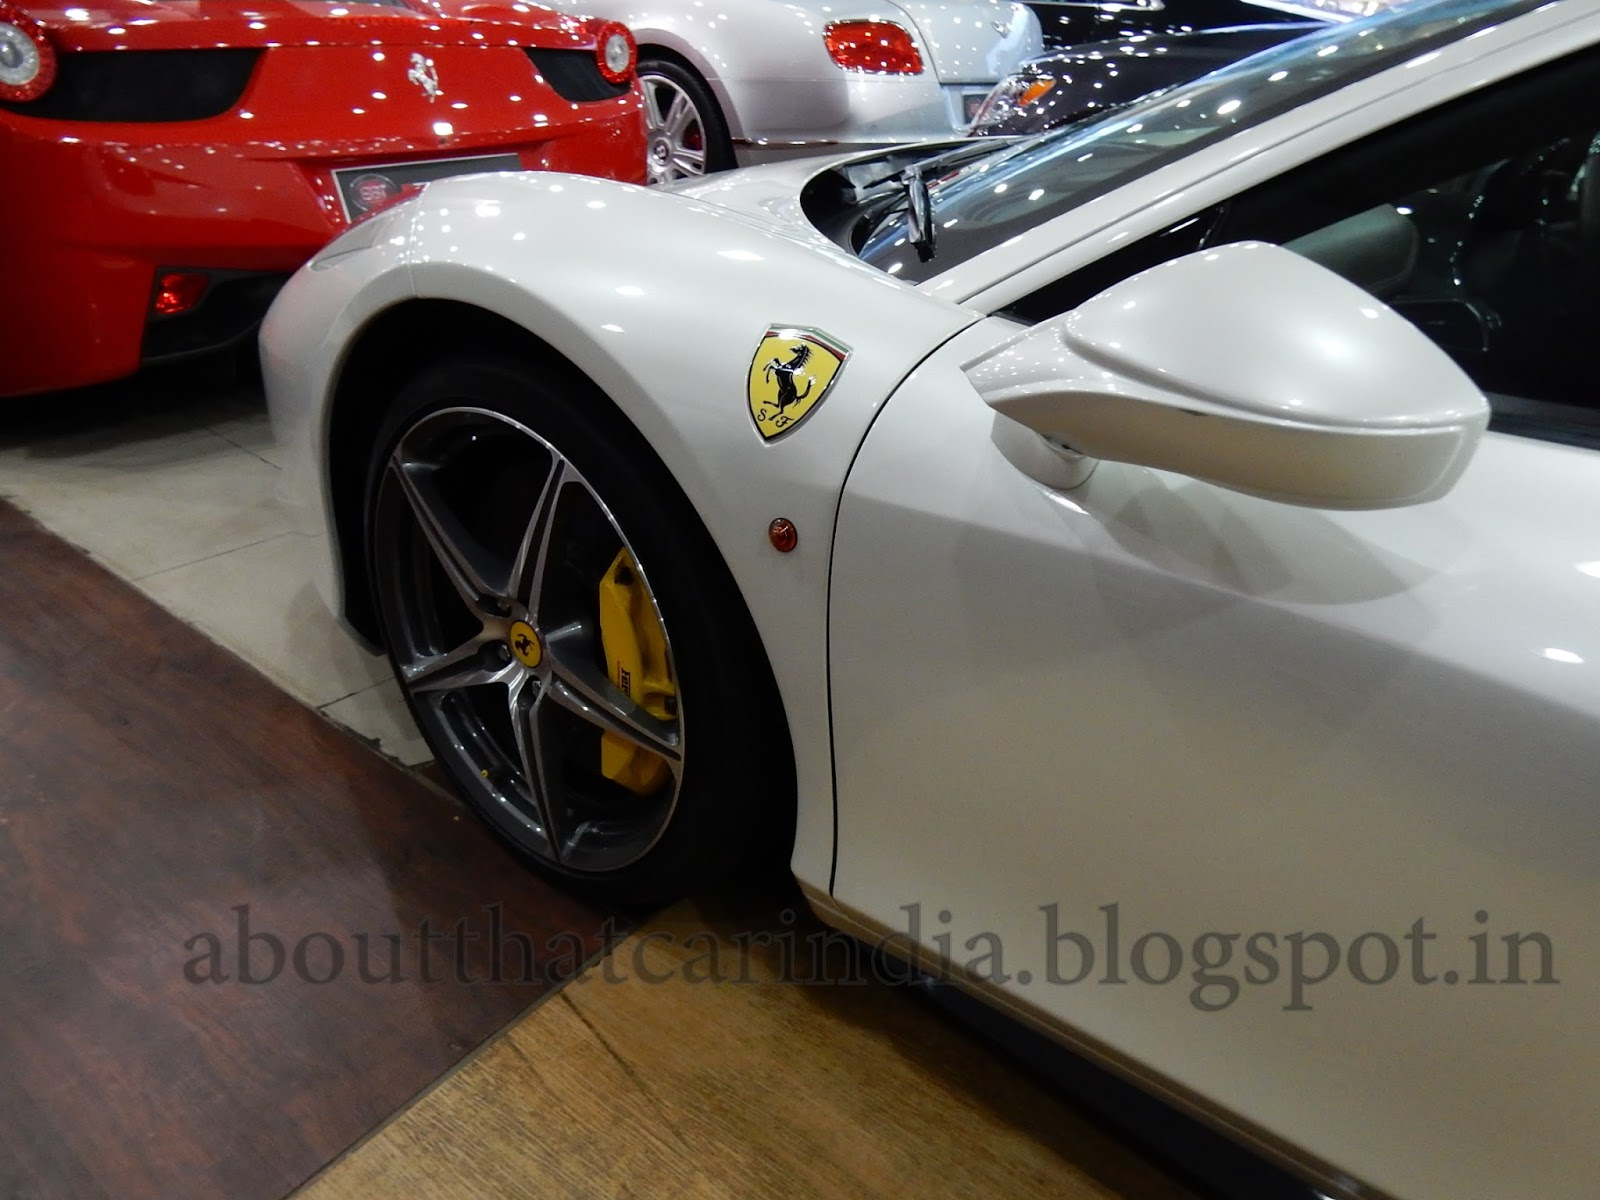 ABOUT THAT CAR ......: BigBoyToyz Delhi latest pictures.... HOT CARS